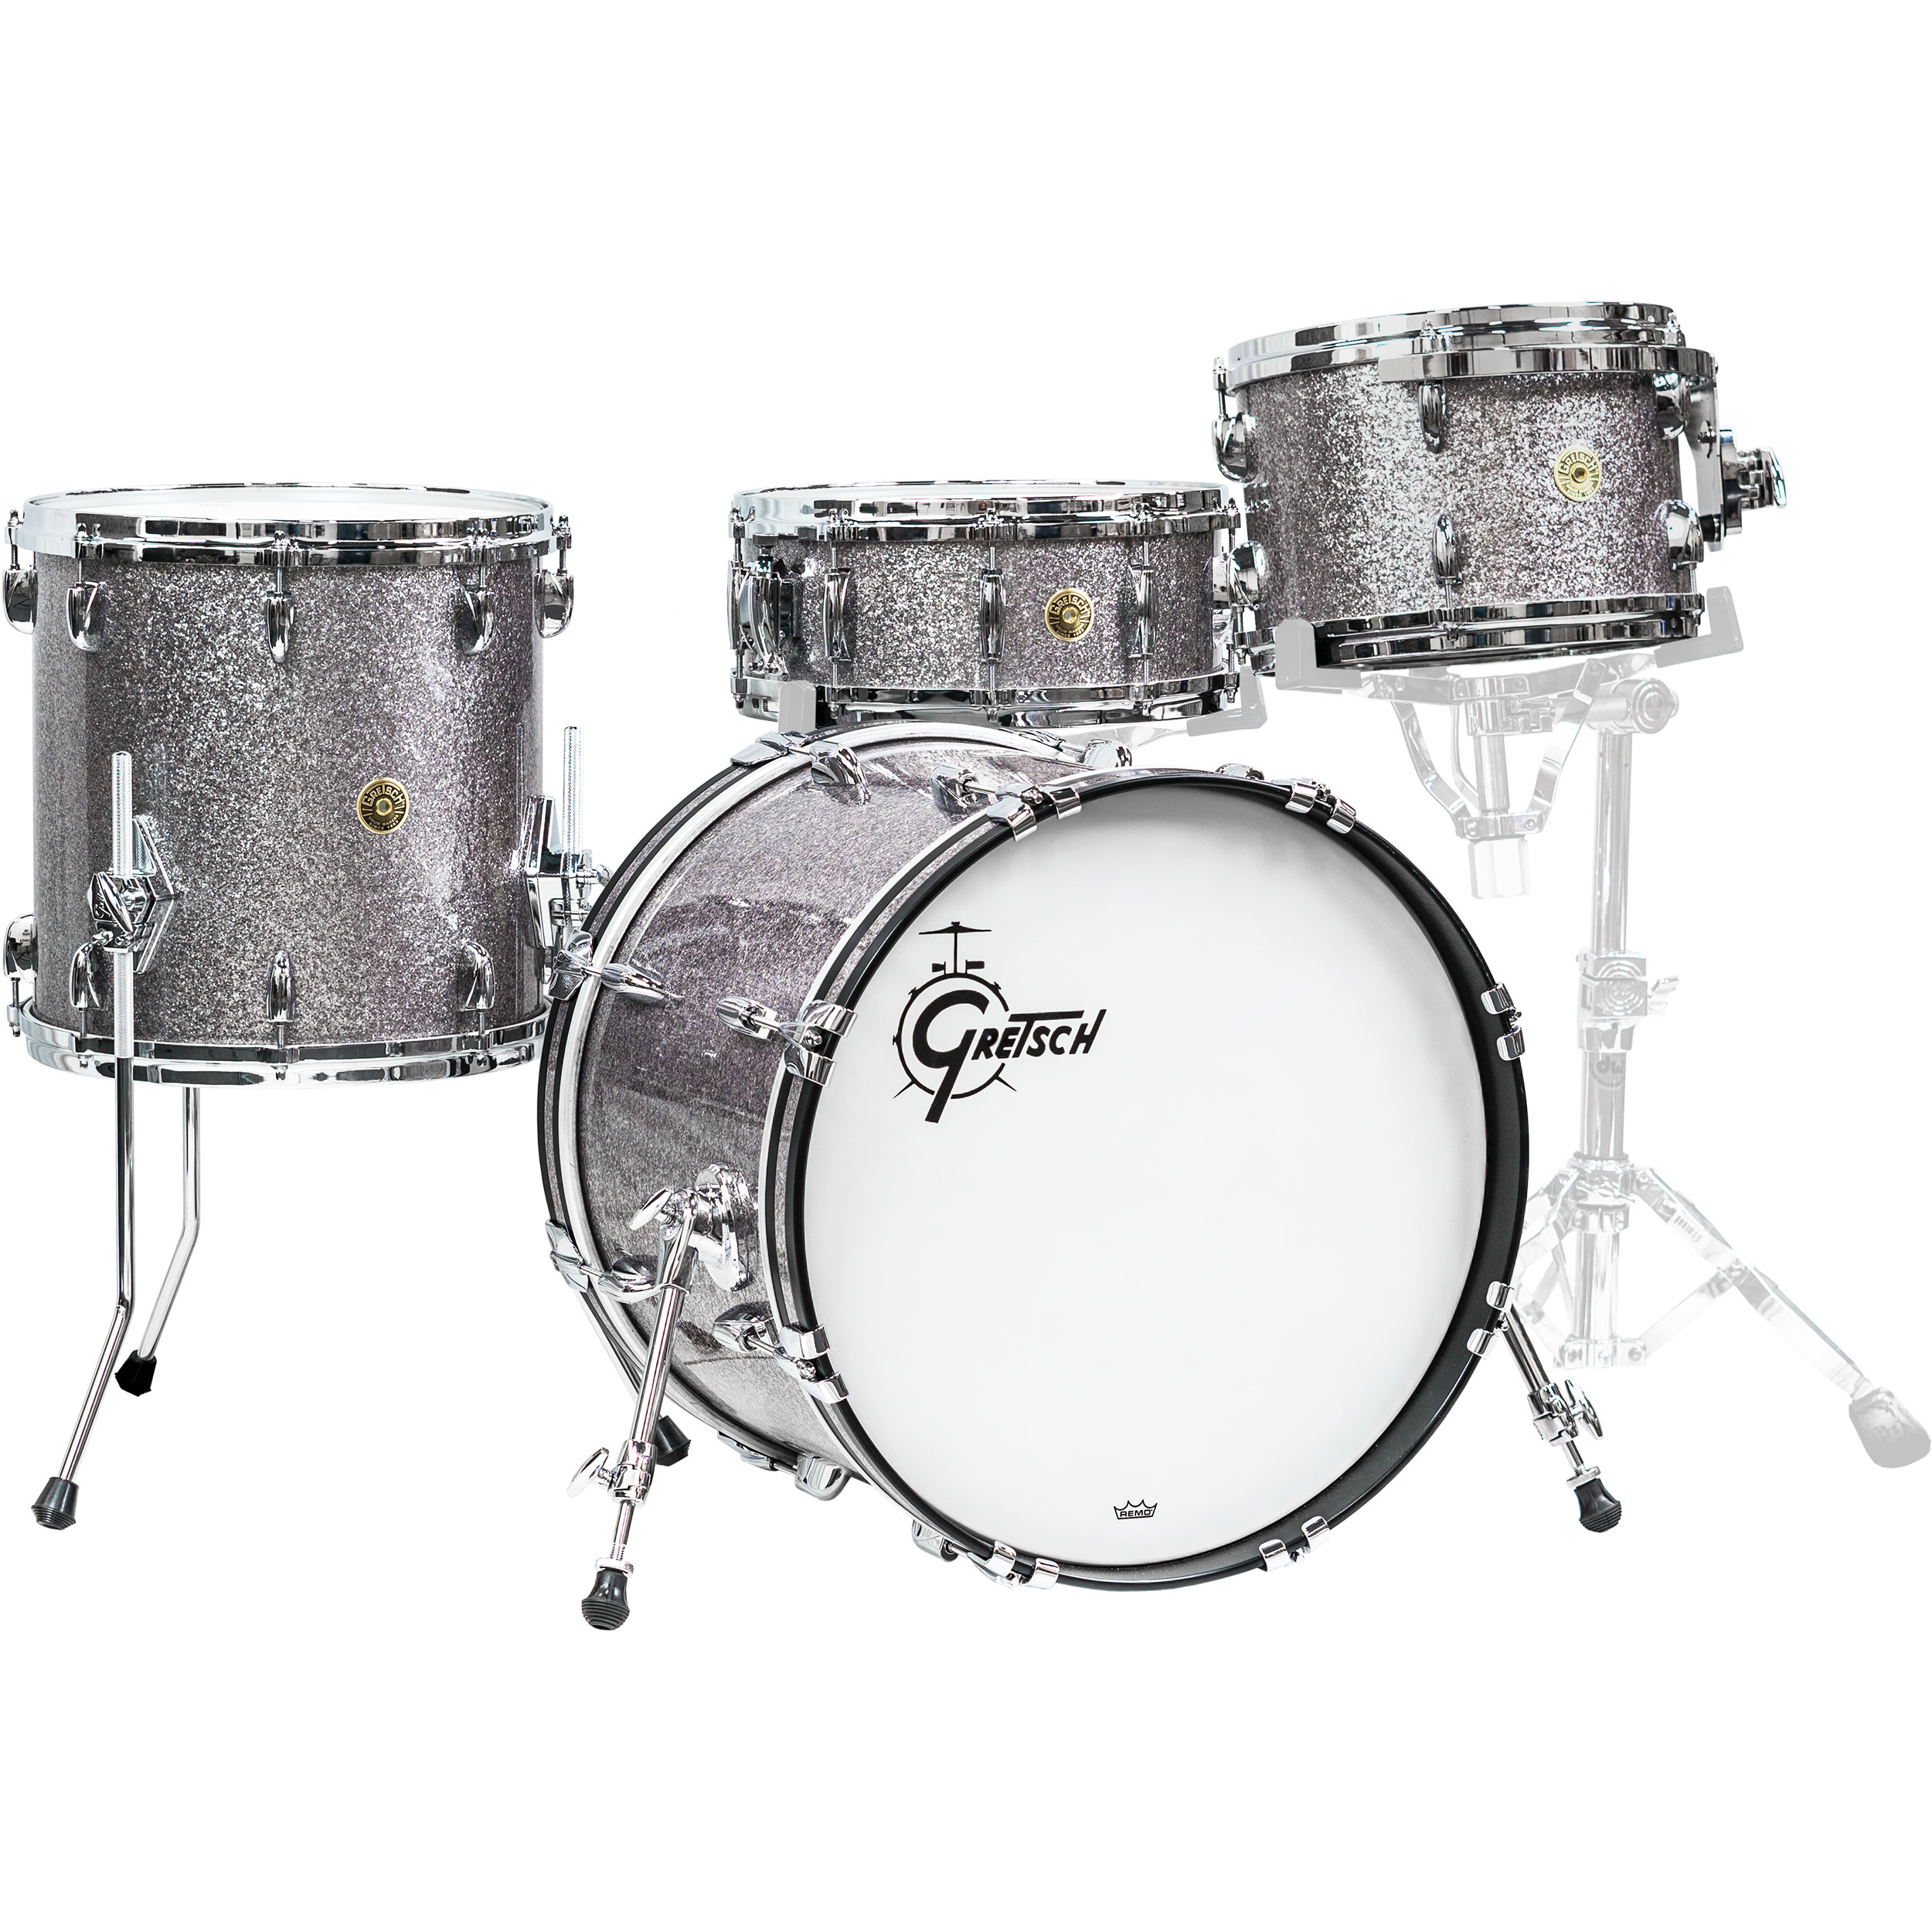 """Gretsch USA Custom 4-Piece Drum Set Shell Pack (20"""" Bass, 12/14"""" Toms, 14"""" Snare) in Pewter Sparkle"""